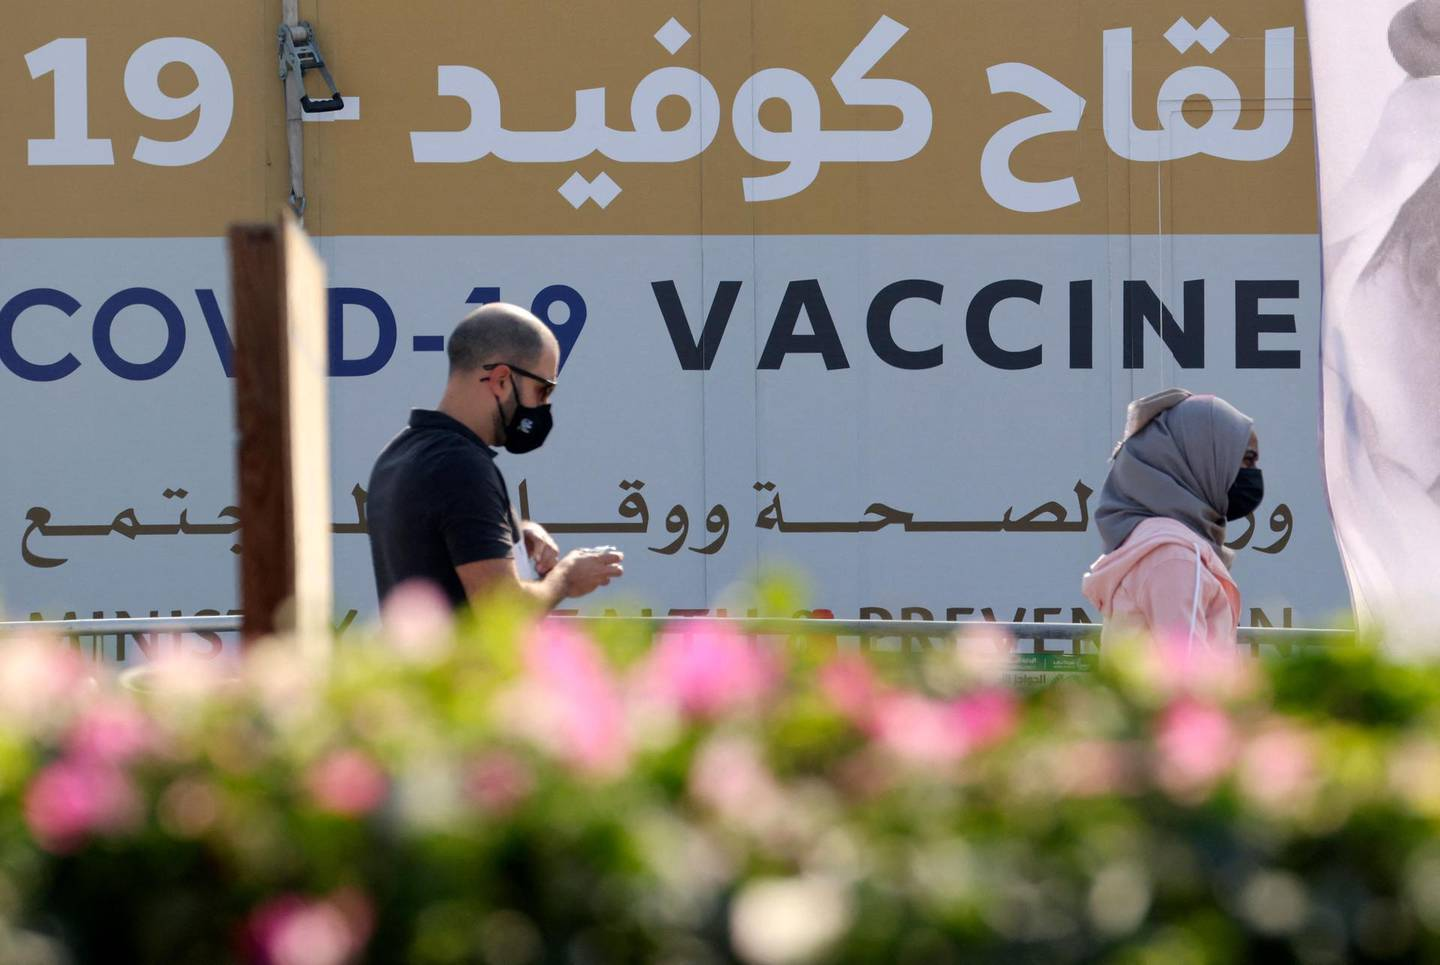 A man and a woman walk past a huge health ministry COVID-19 vaccines announcement outside a medical centre in Dubai on February 16, 2021, as the Gulf emirates goes ahead its vaccination effort. The UAE, home to a population of around 10 million, has administered some 4.6 million doses of vaccine, making it the second-fastest per capita delivery in the world, after Israel. / AFP / Karim SAHIB